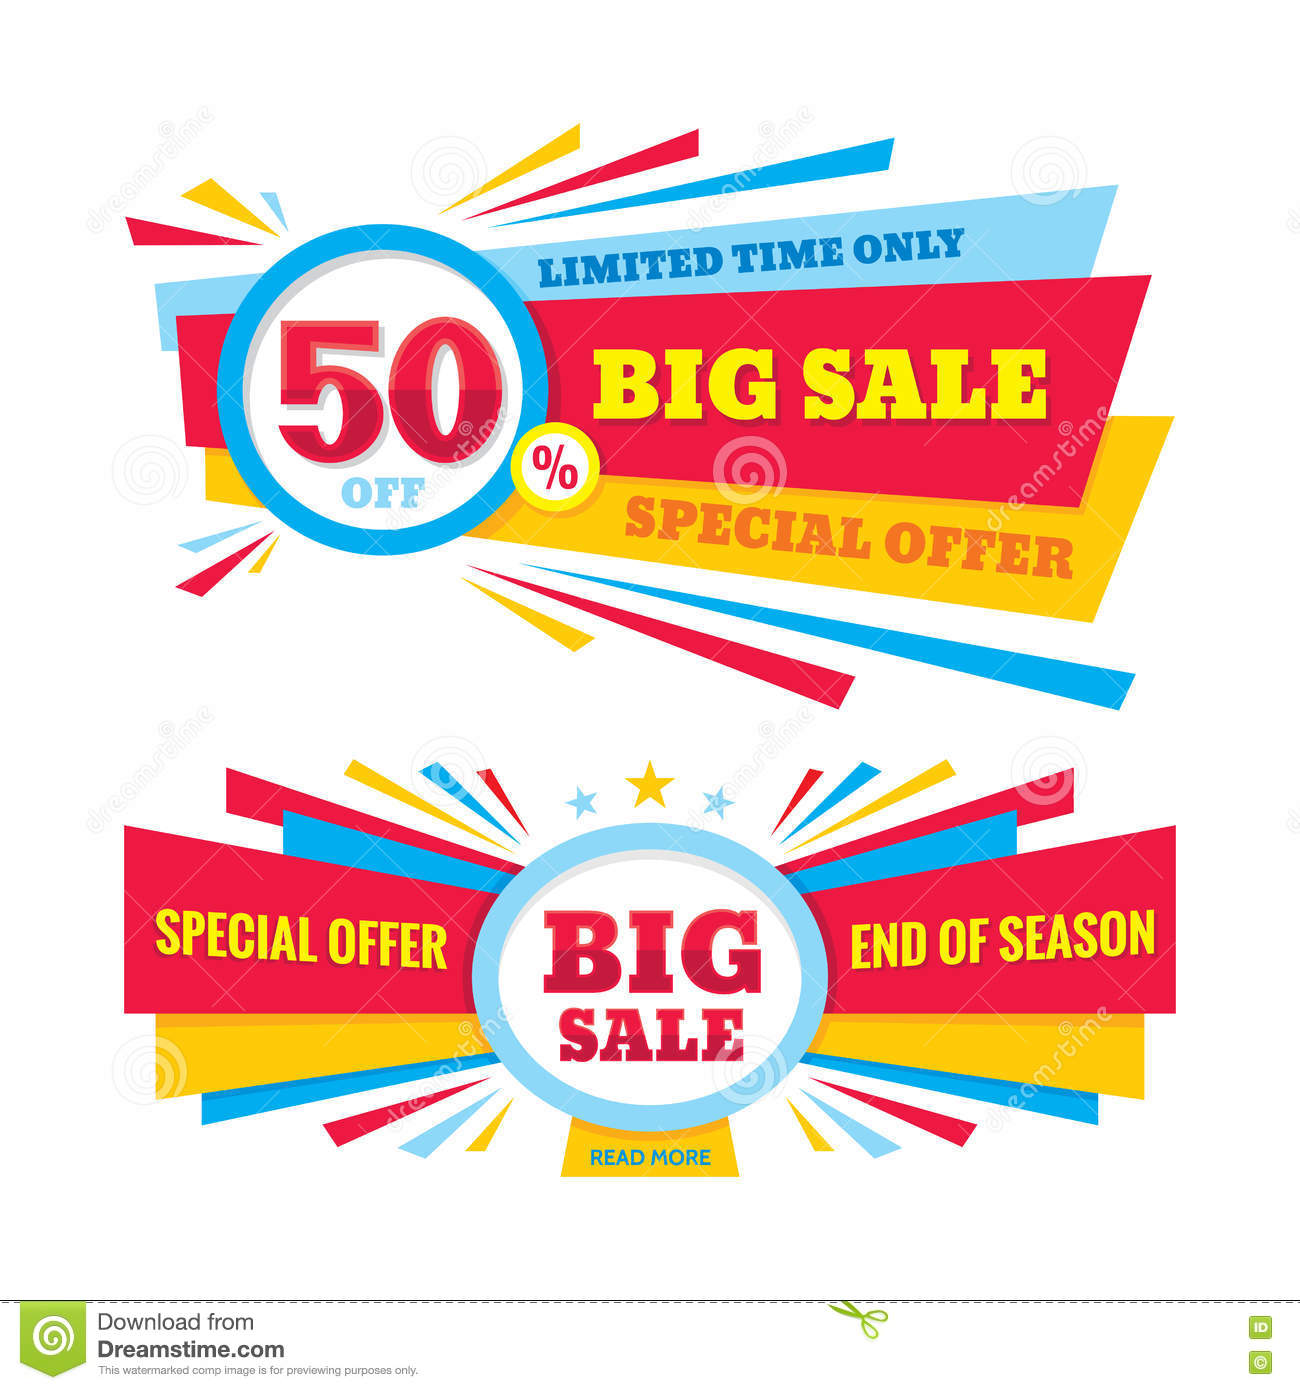 big sale vector banner discount 50 off special offer creative design layout limited